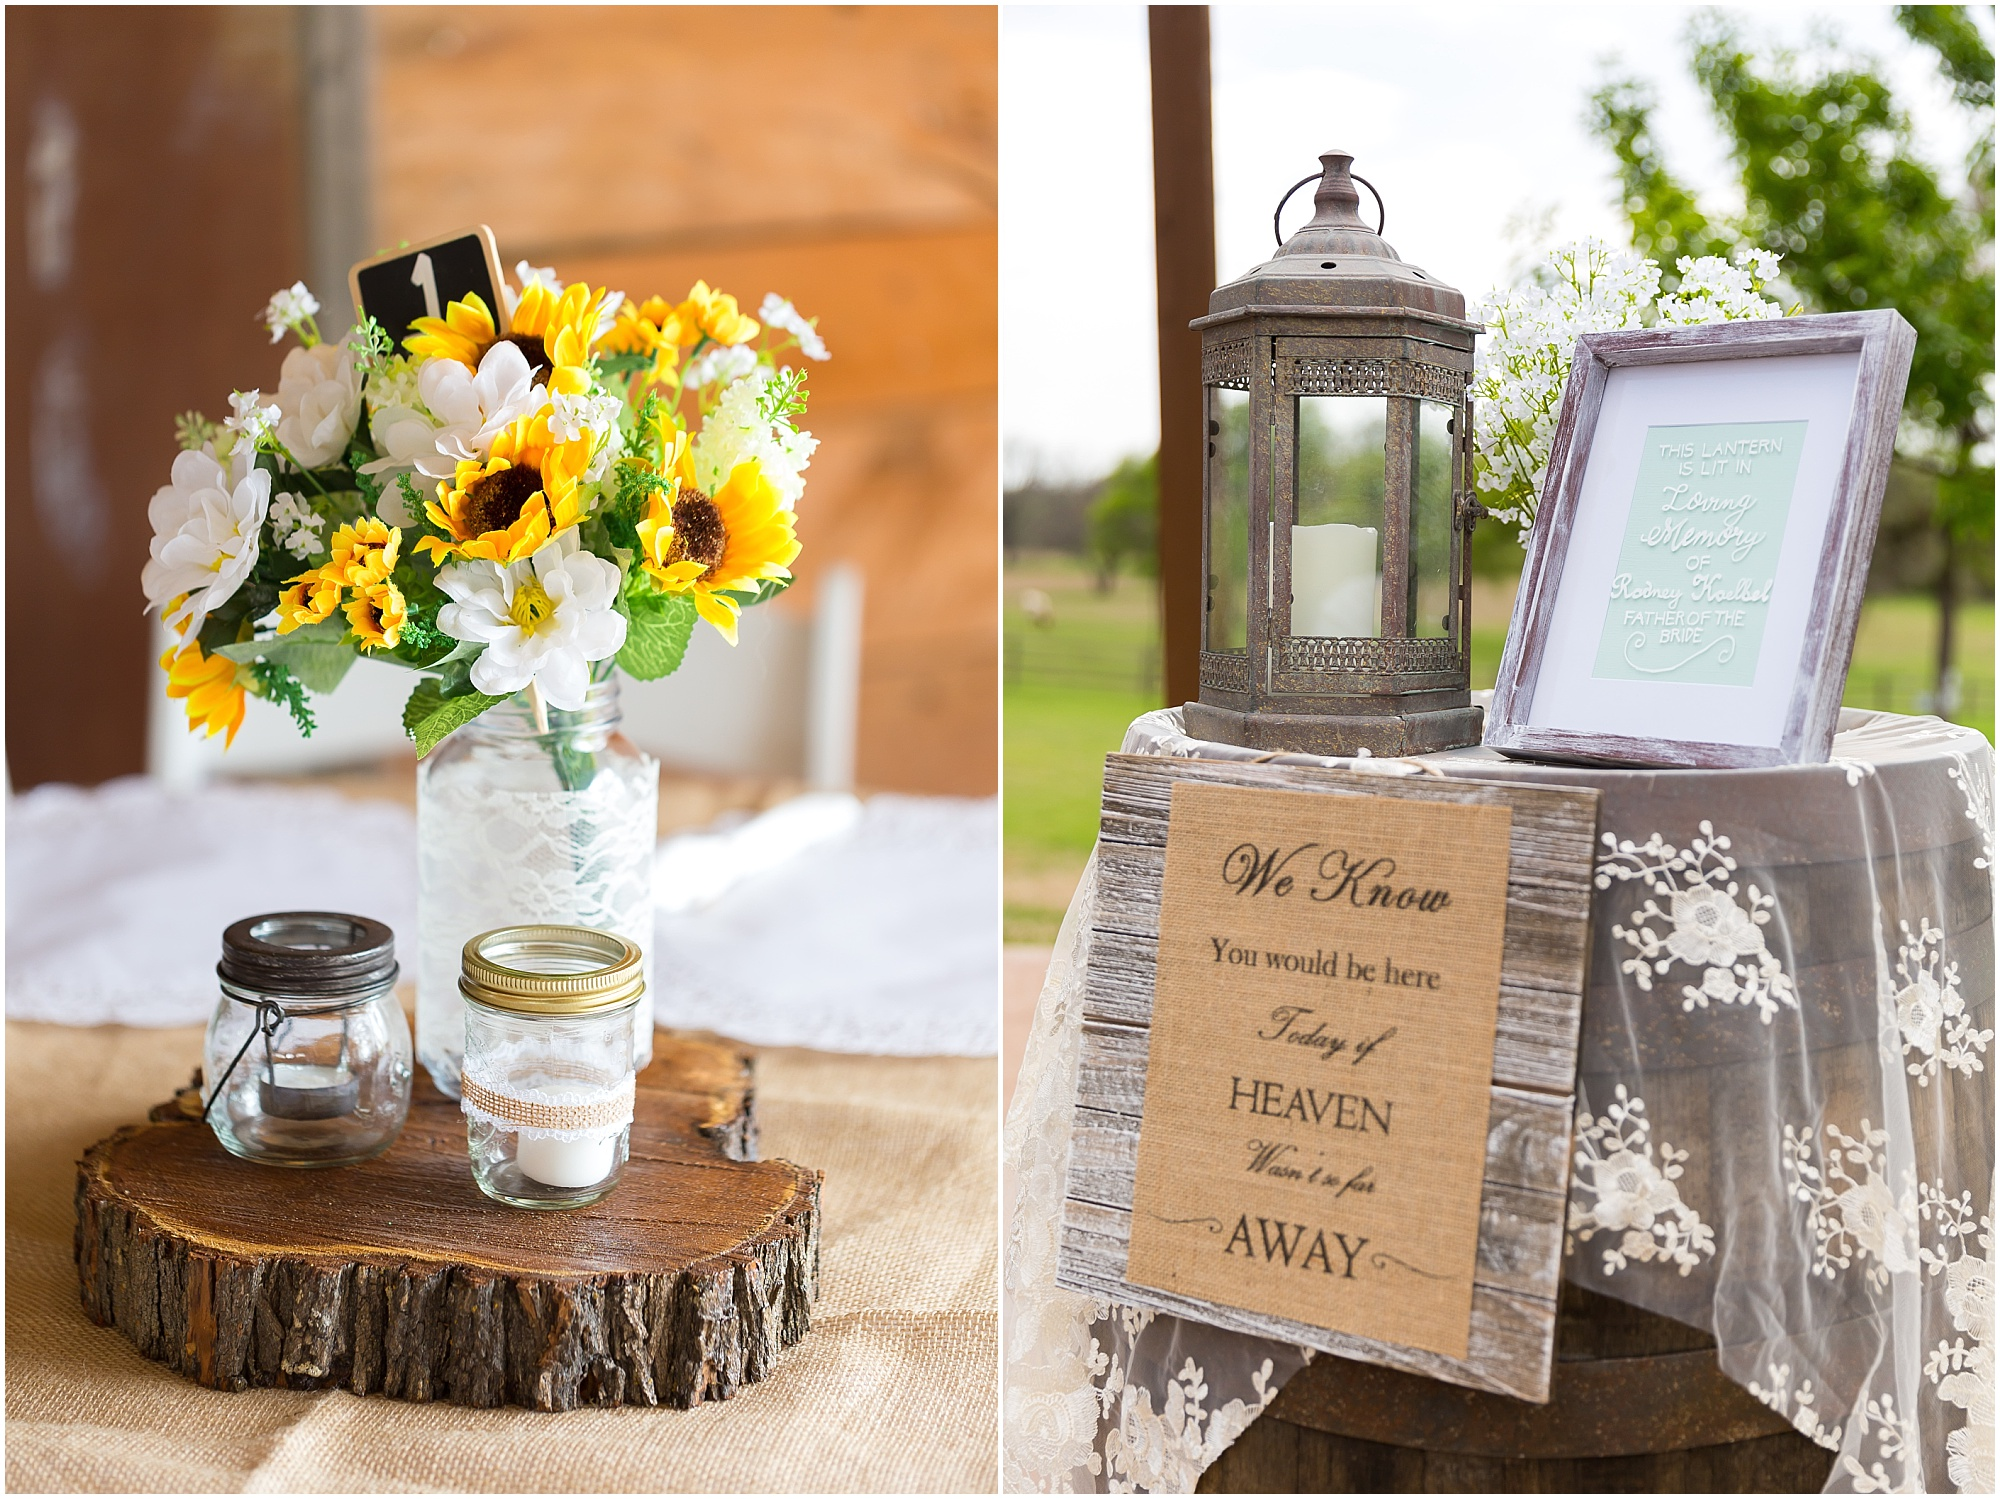 Sunflowers and baby's breath centerpieces at rustic wedding at Peacock River Ranch - Jason & Melaina Photography - www.jasonandmelaina.com